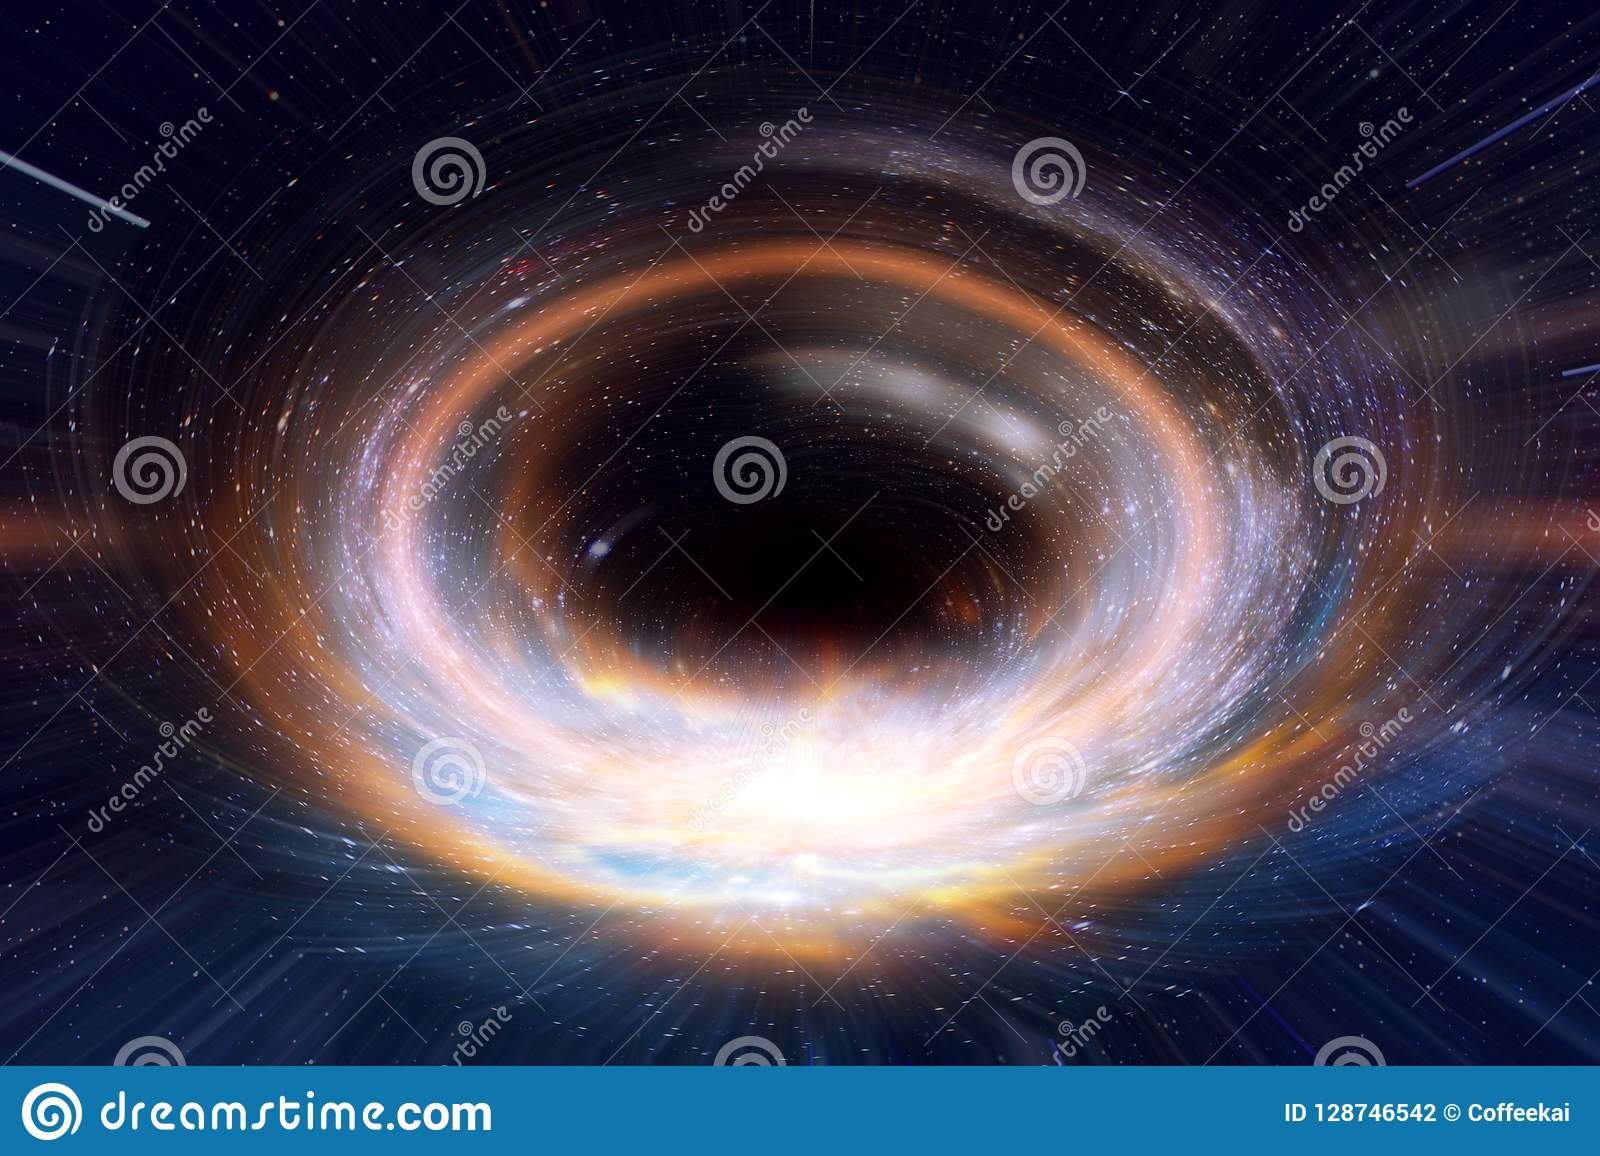 Black hole or wormhole in galaxy space and times across in the universe concept art